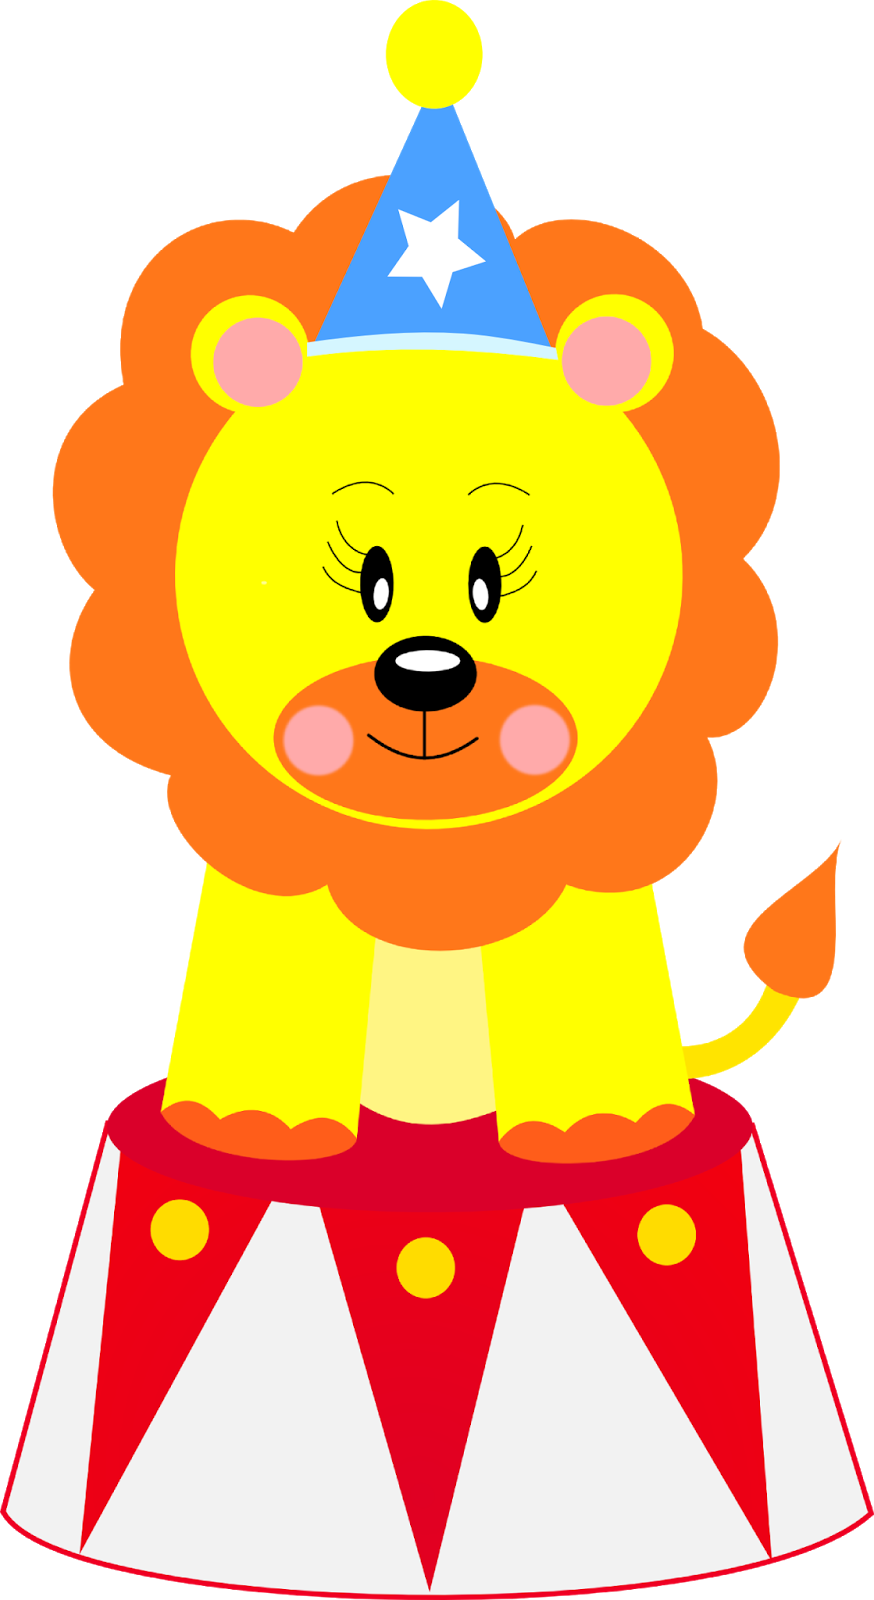 circus lion png - photo #15